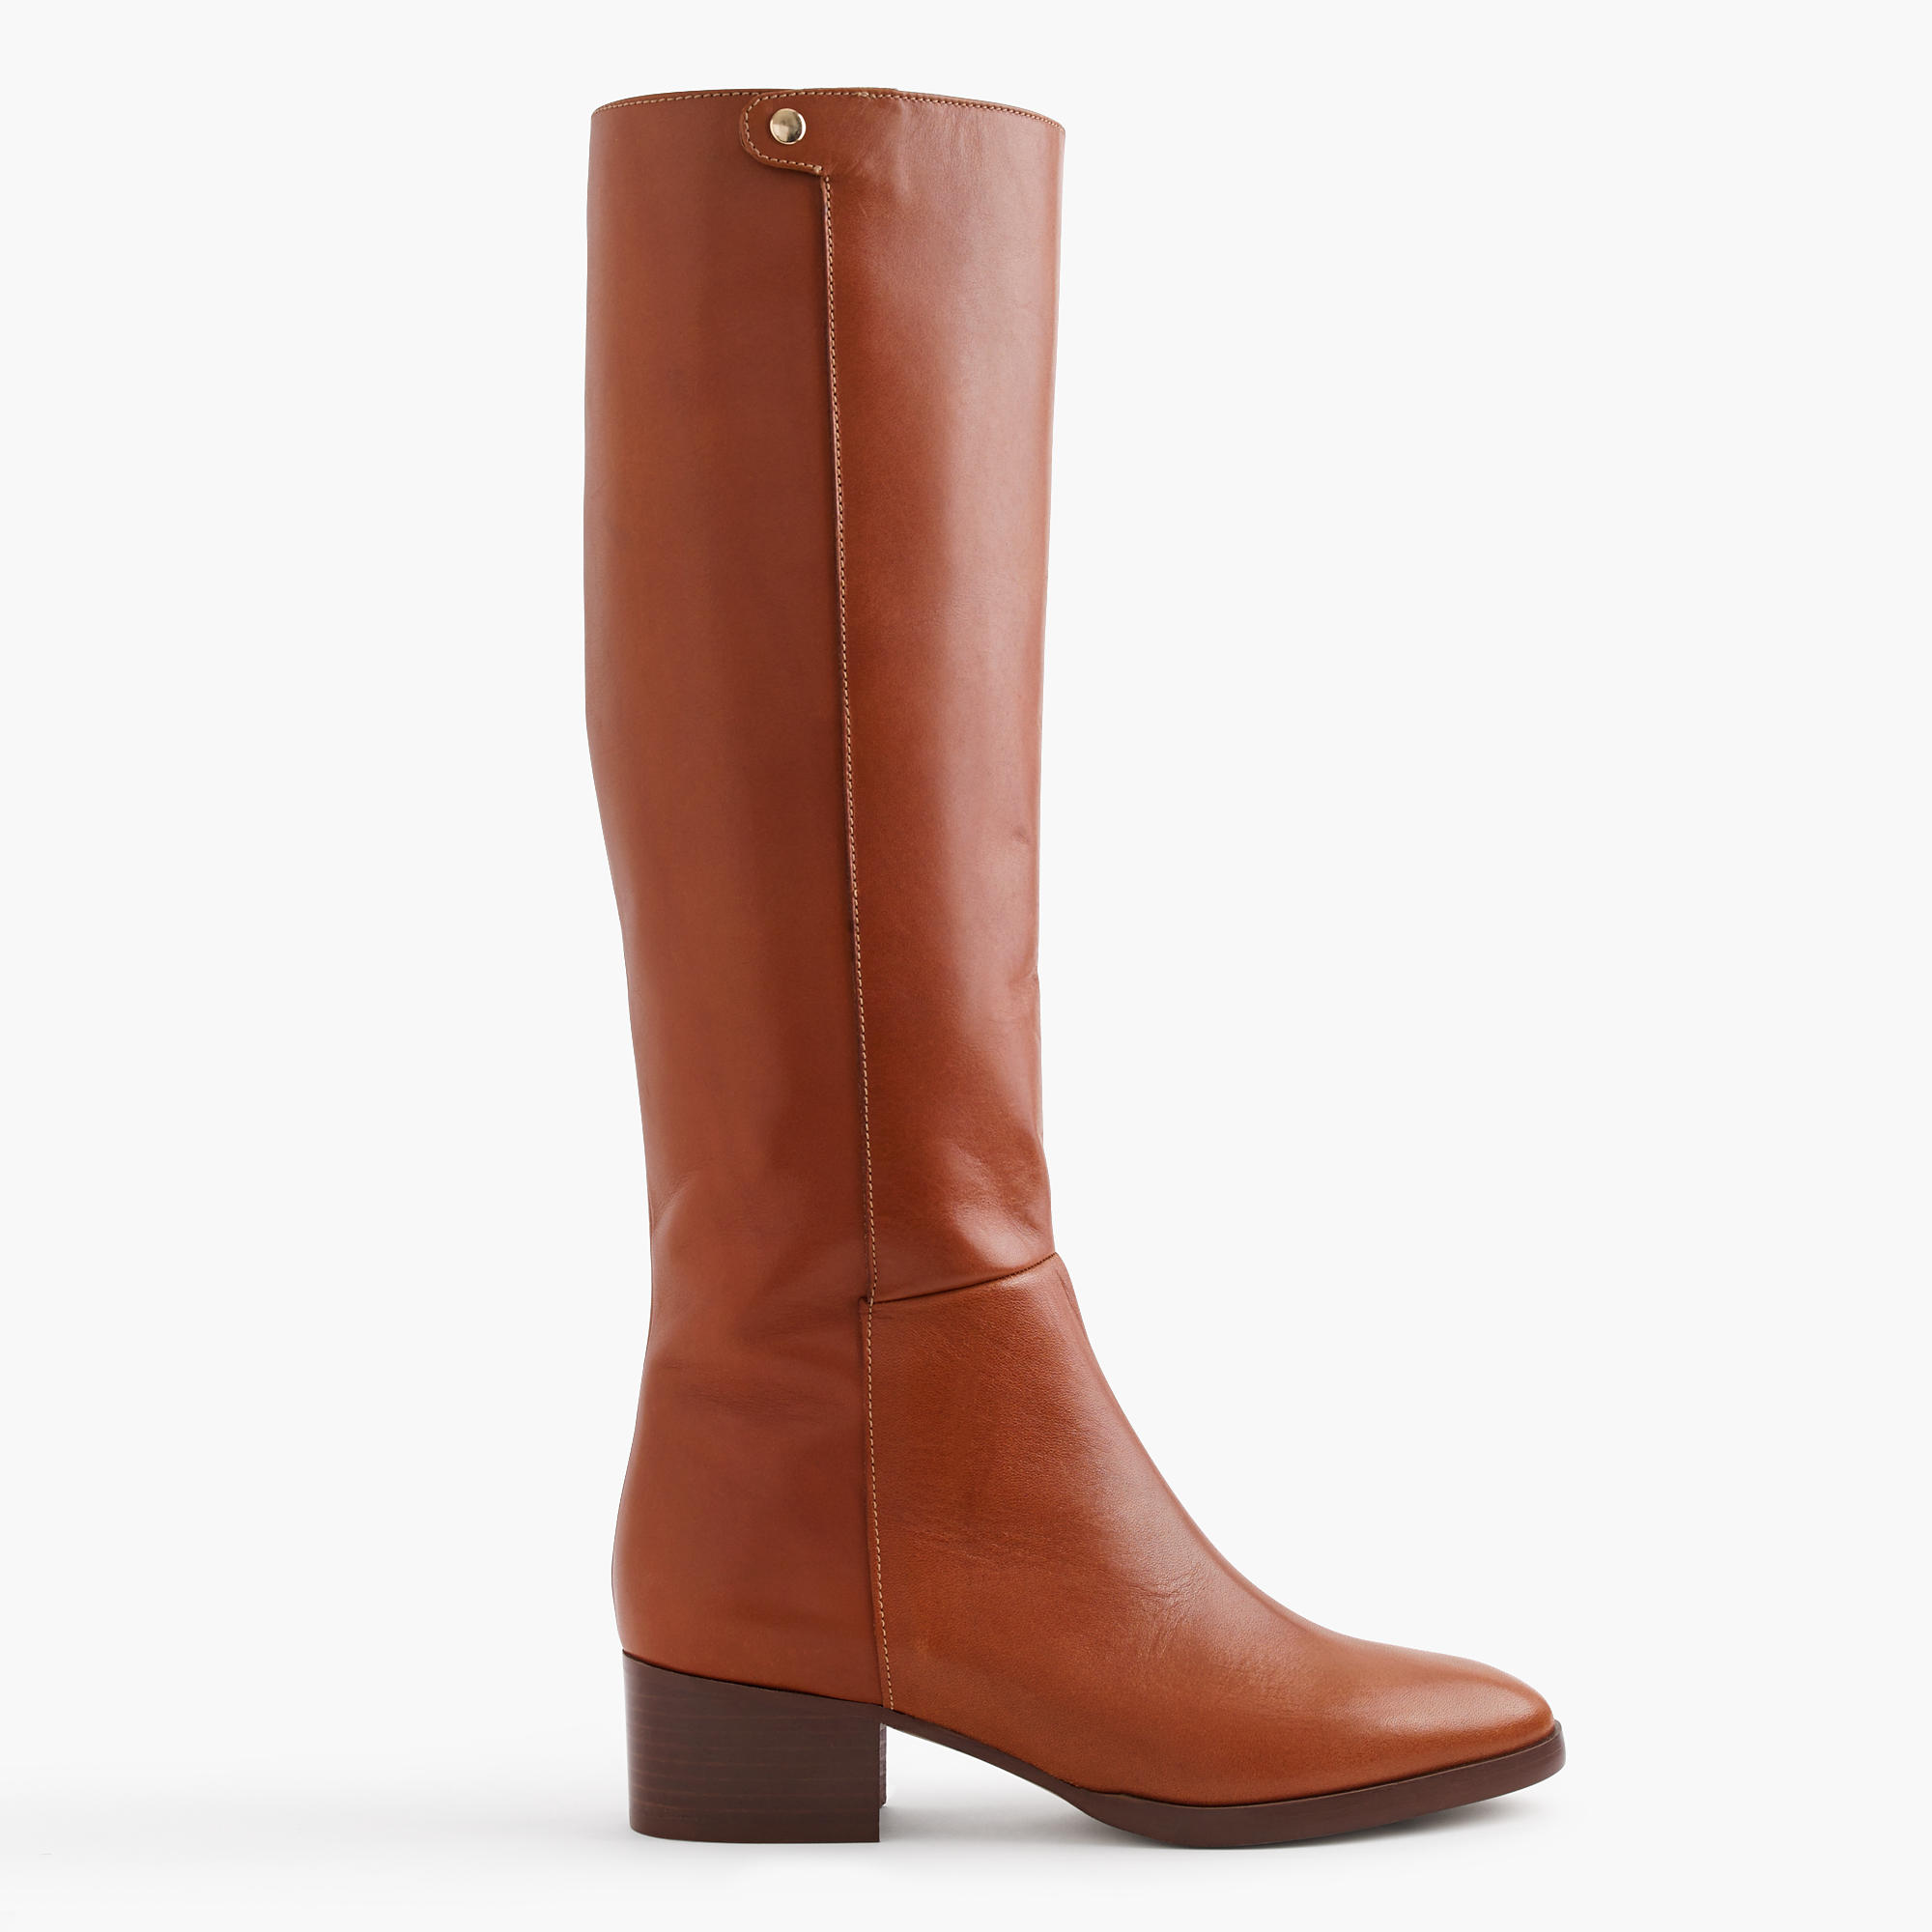 J Crew leather boots |  | see more on www.shoppingmycloset.com #jcrew